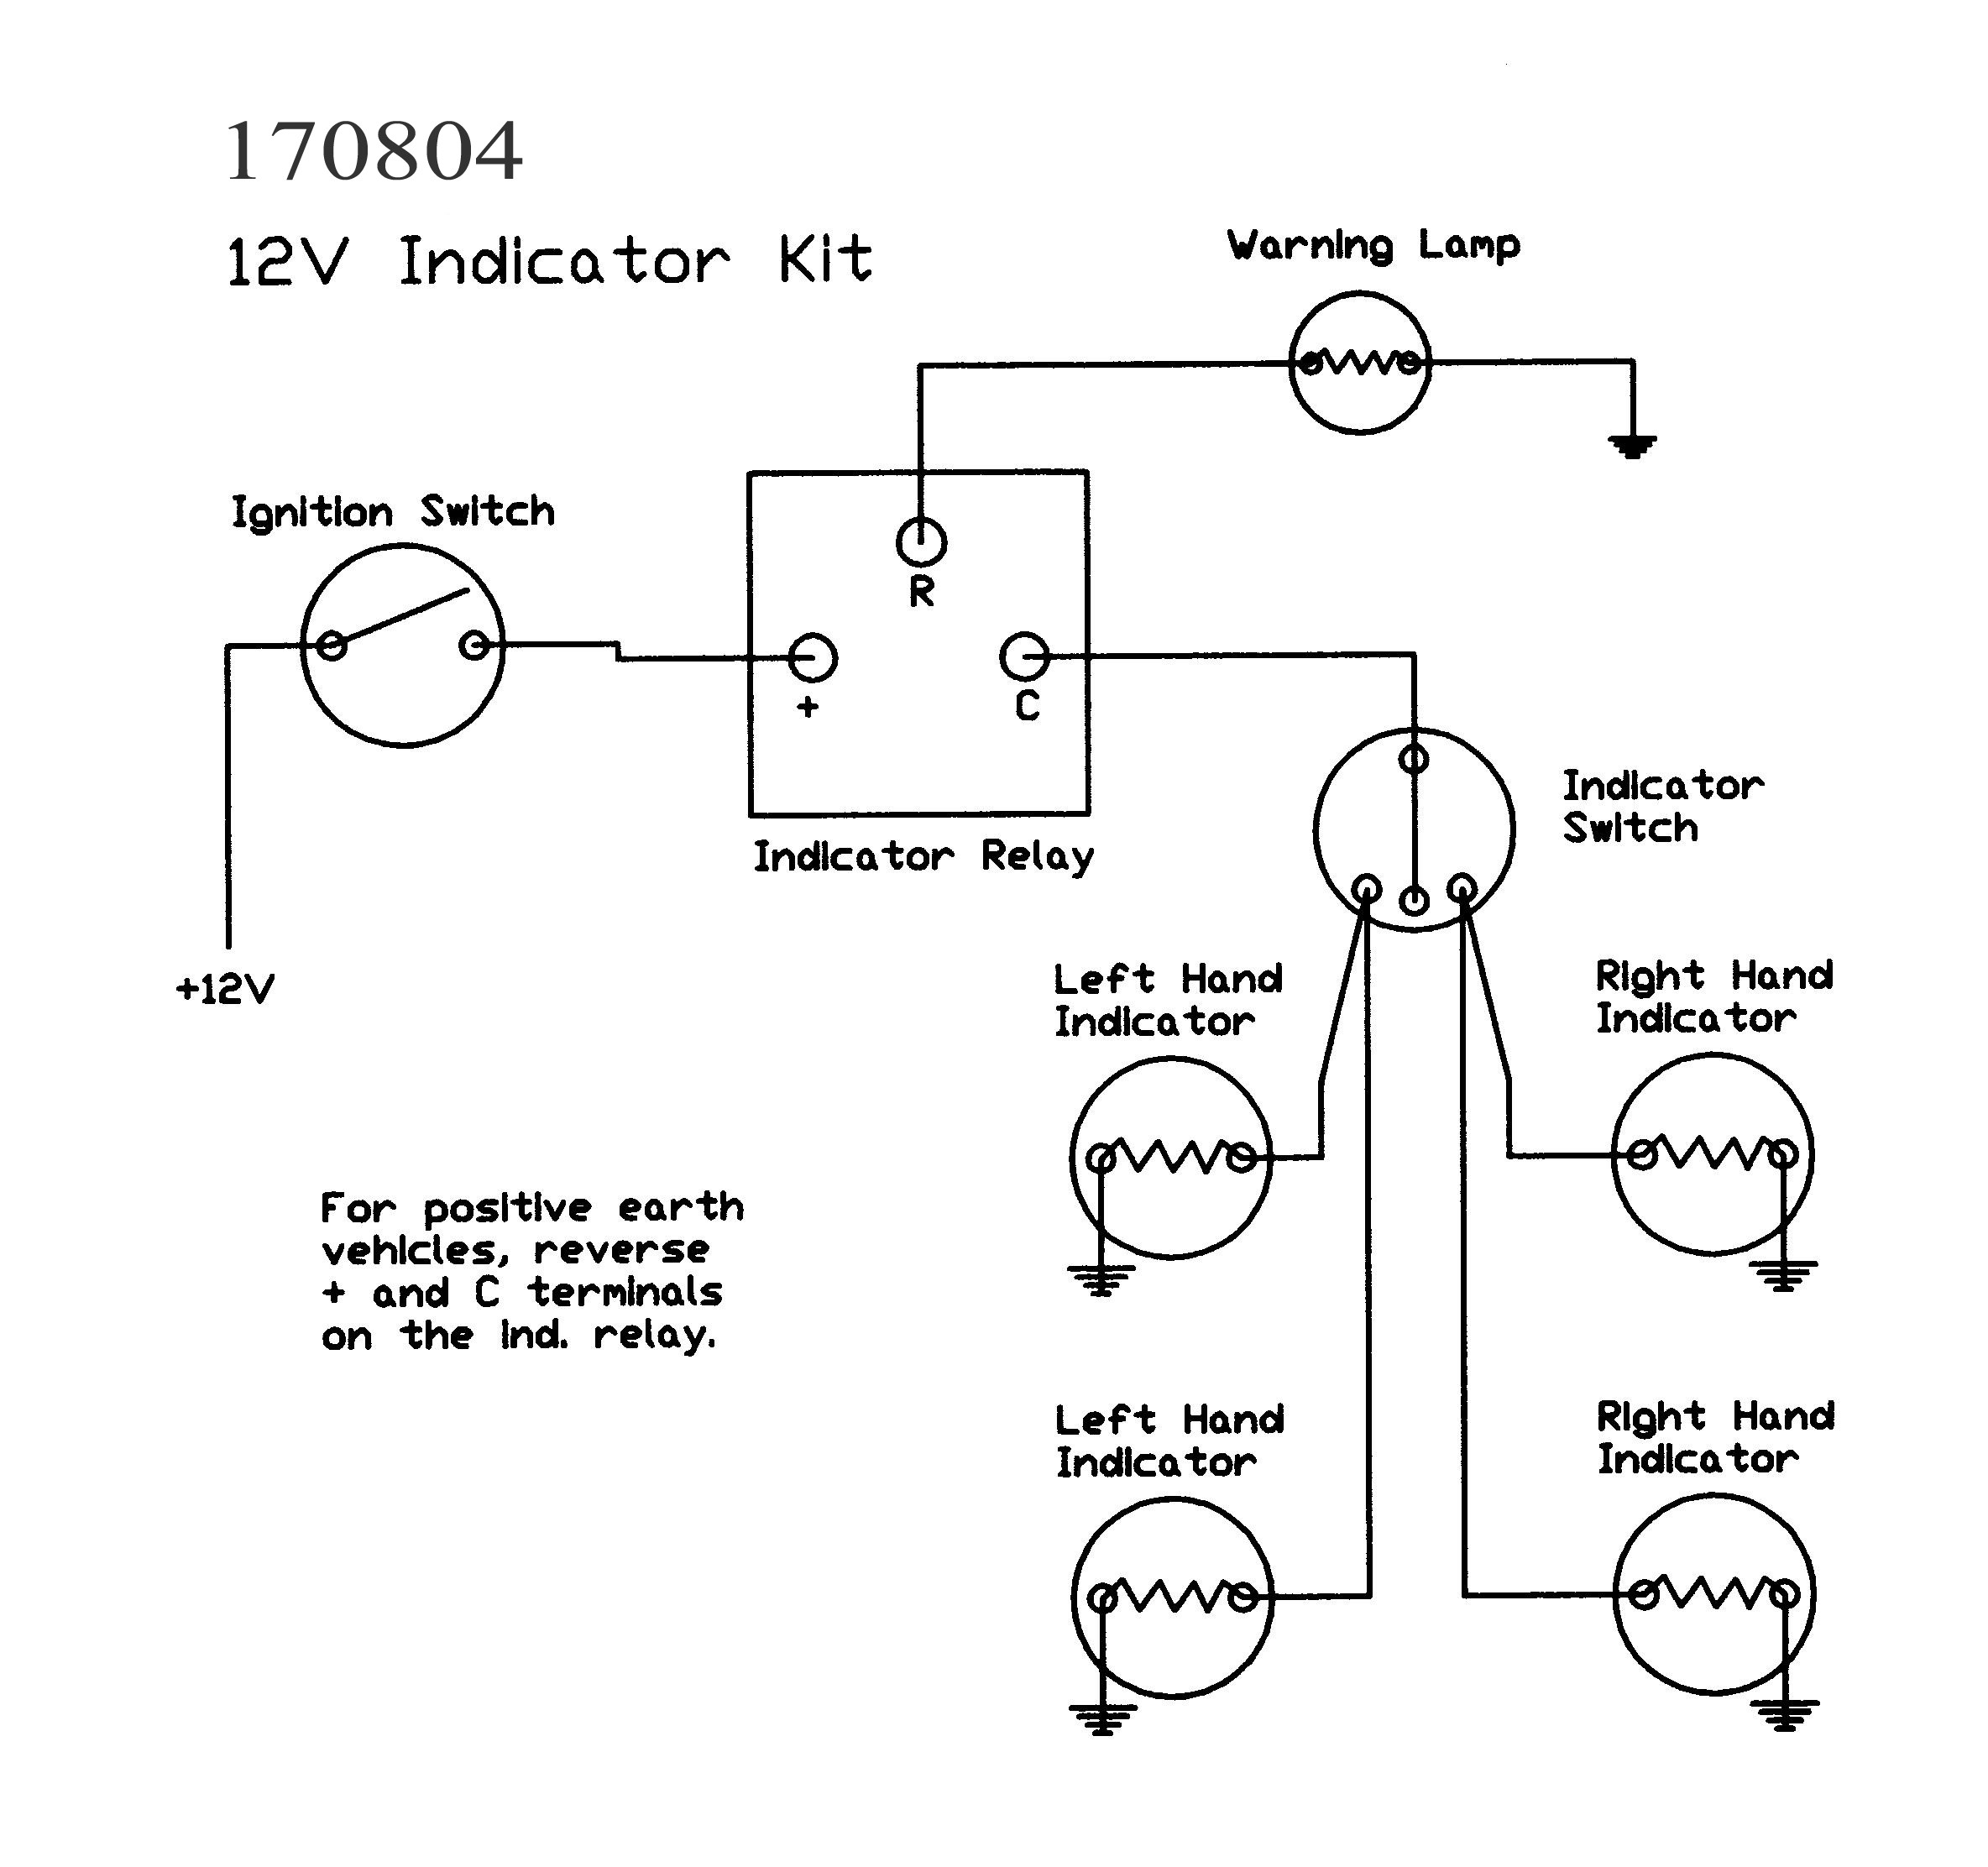 3 Prong    Flasher       Wiring       Diagram         Wiring       Diagram    Image